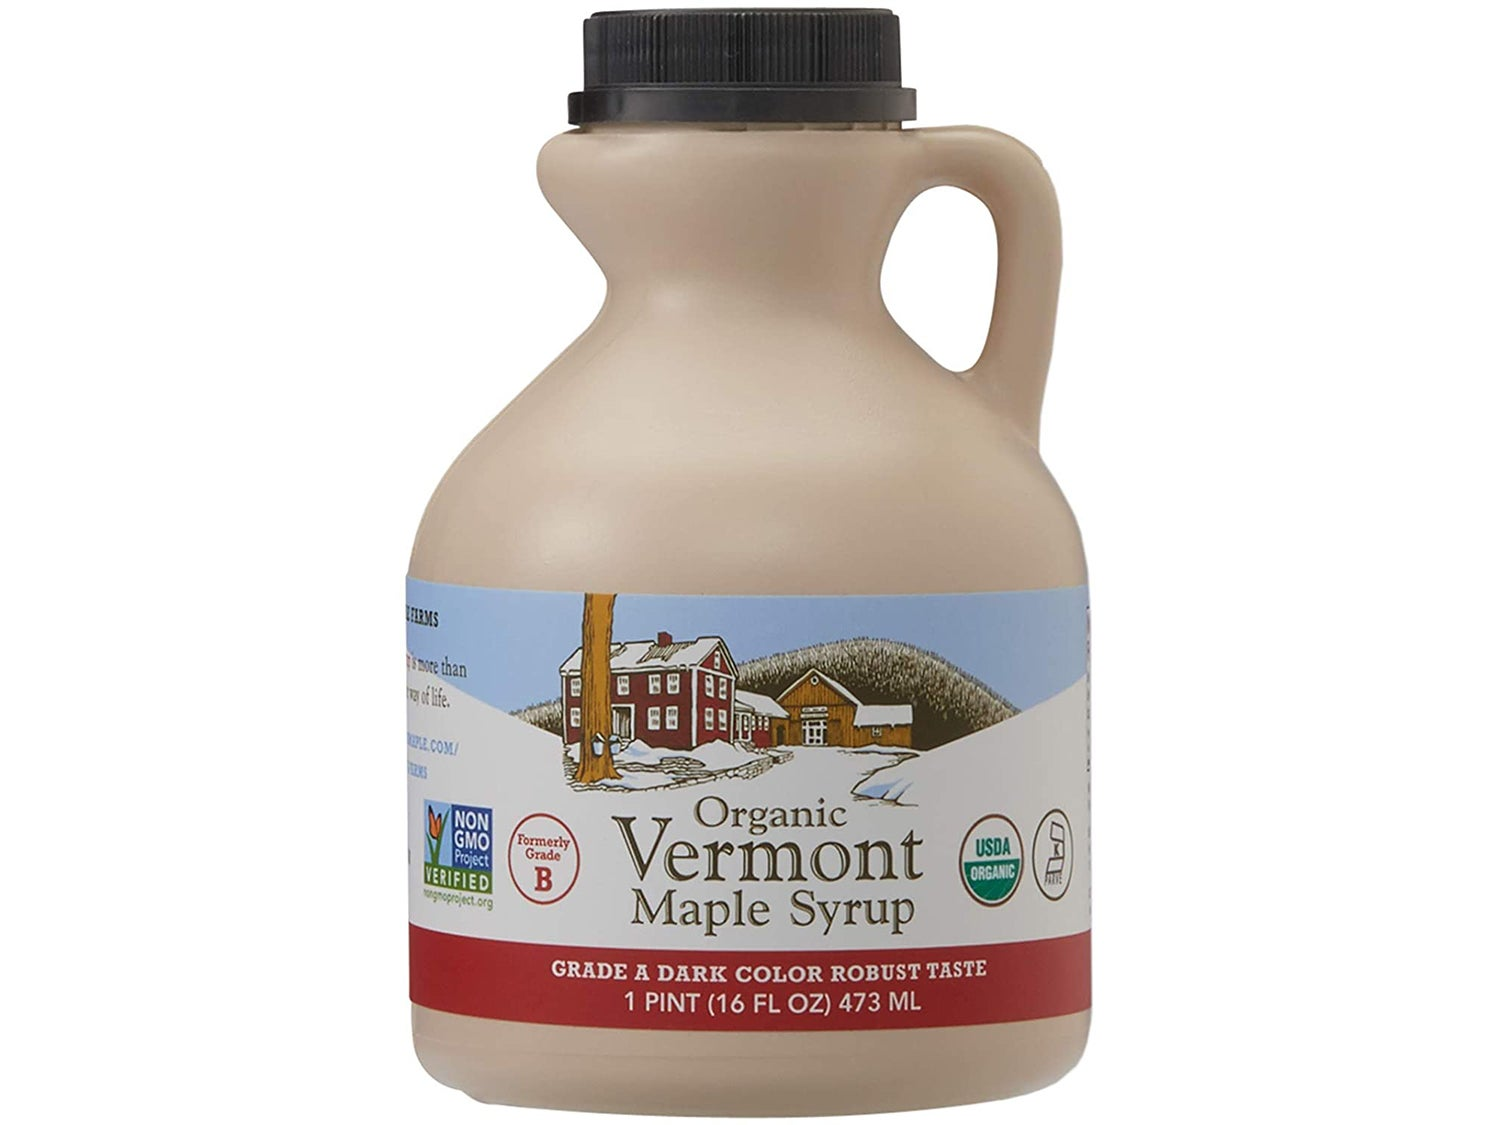 Hidden Springs Maple Organic Vermont Maple Syrup, Grade A Dark Robust (Formerly Grade B), 16 Ounce, 1 Pint, Family Farms, BPA-free Jug